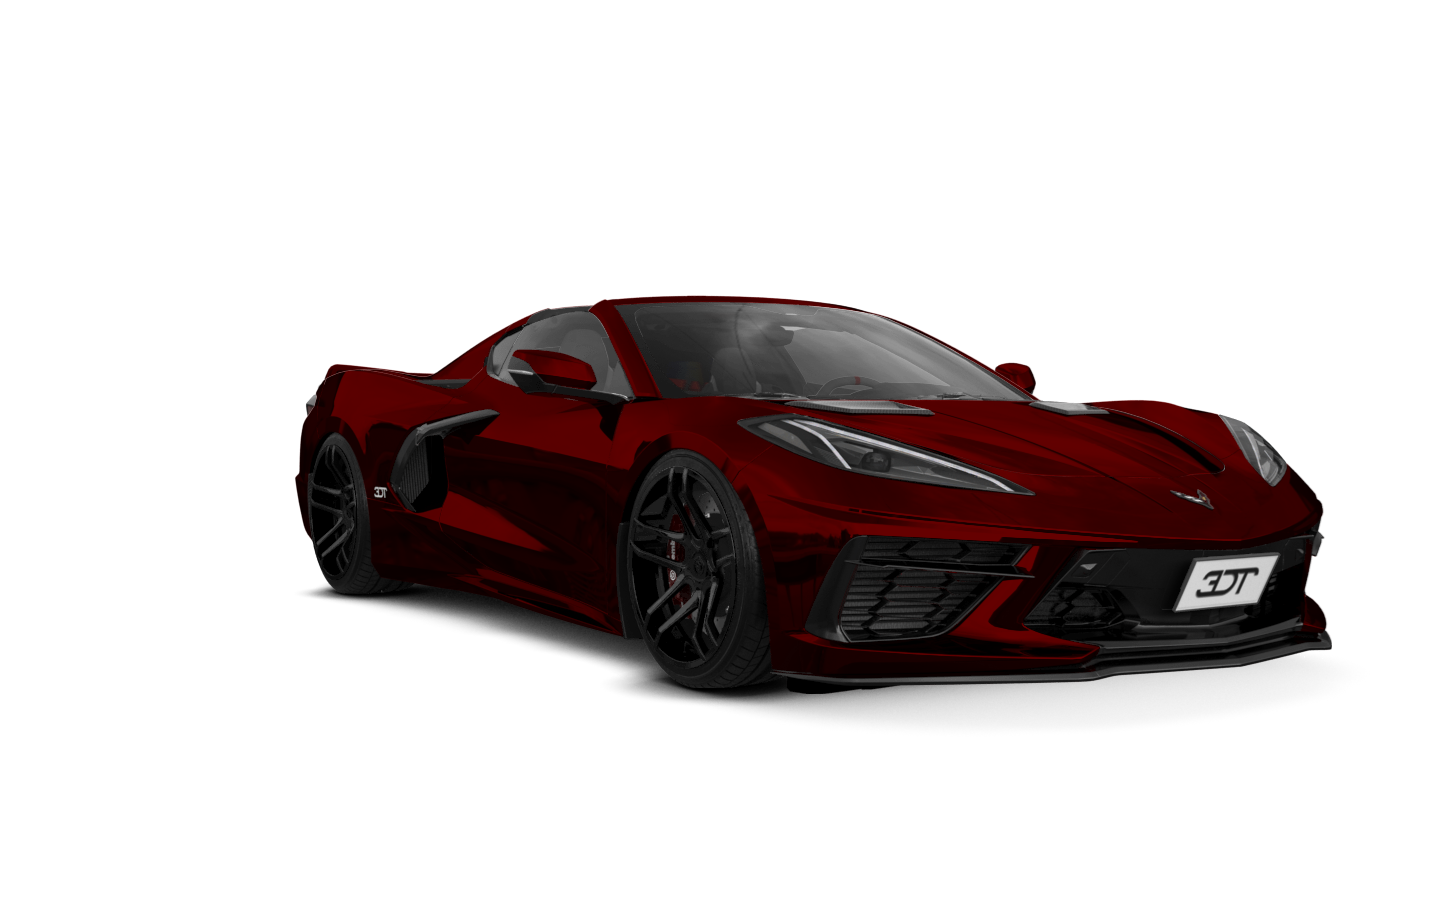 Chevrolet Corvette 2 door targa top 2020 tuning